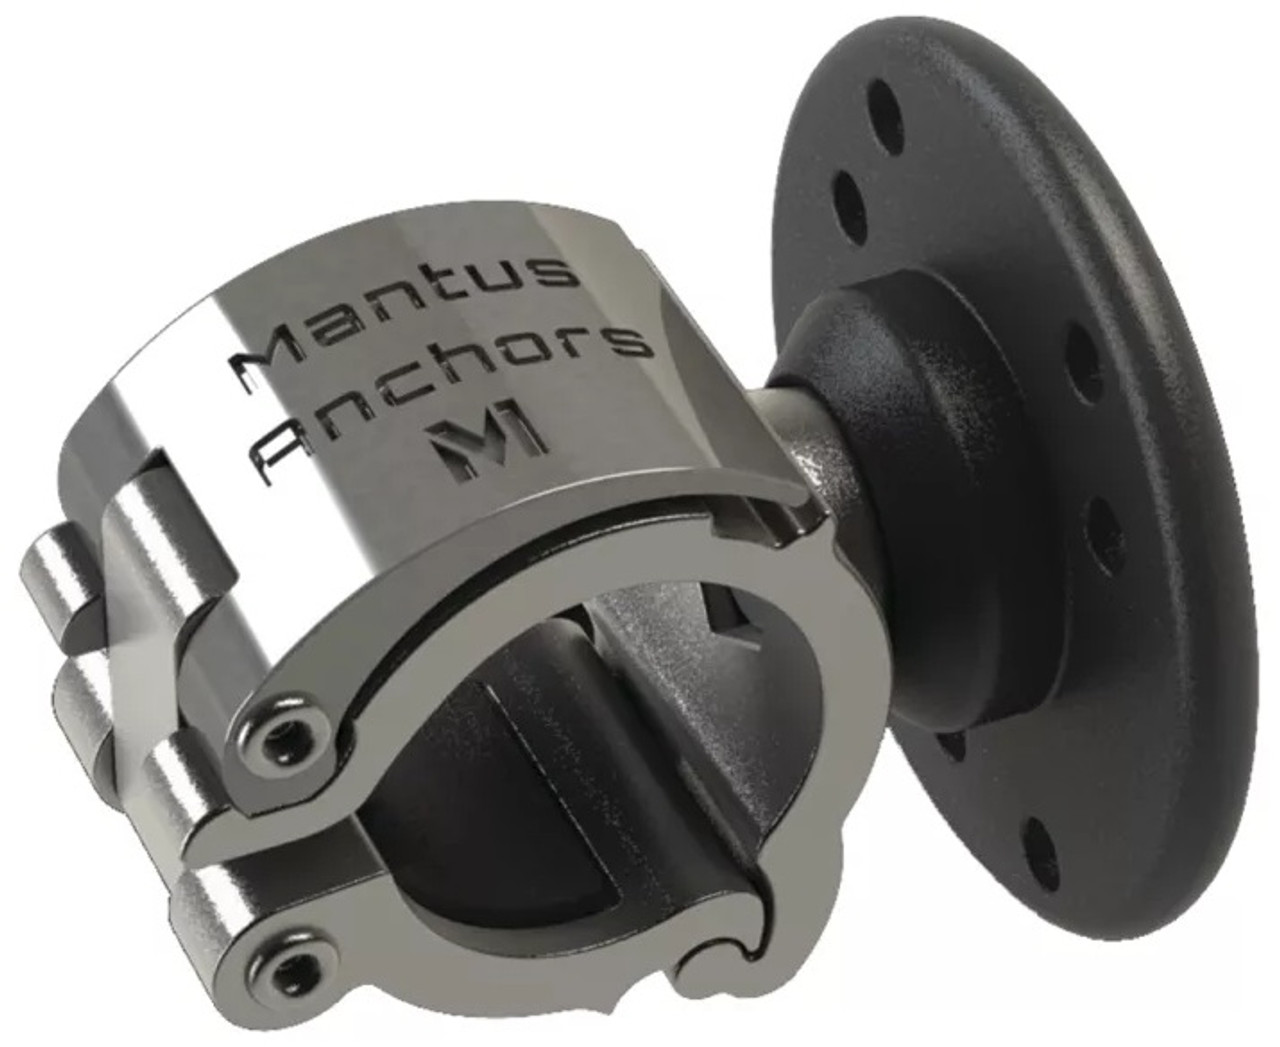 Mantus 316 Stainless Steel Tube Clamp - RAM Mount Compatible